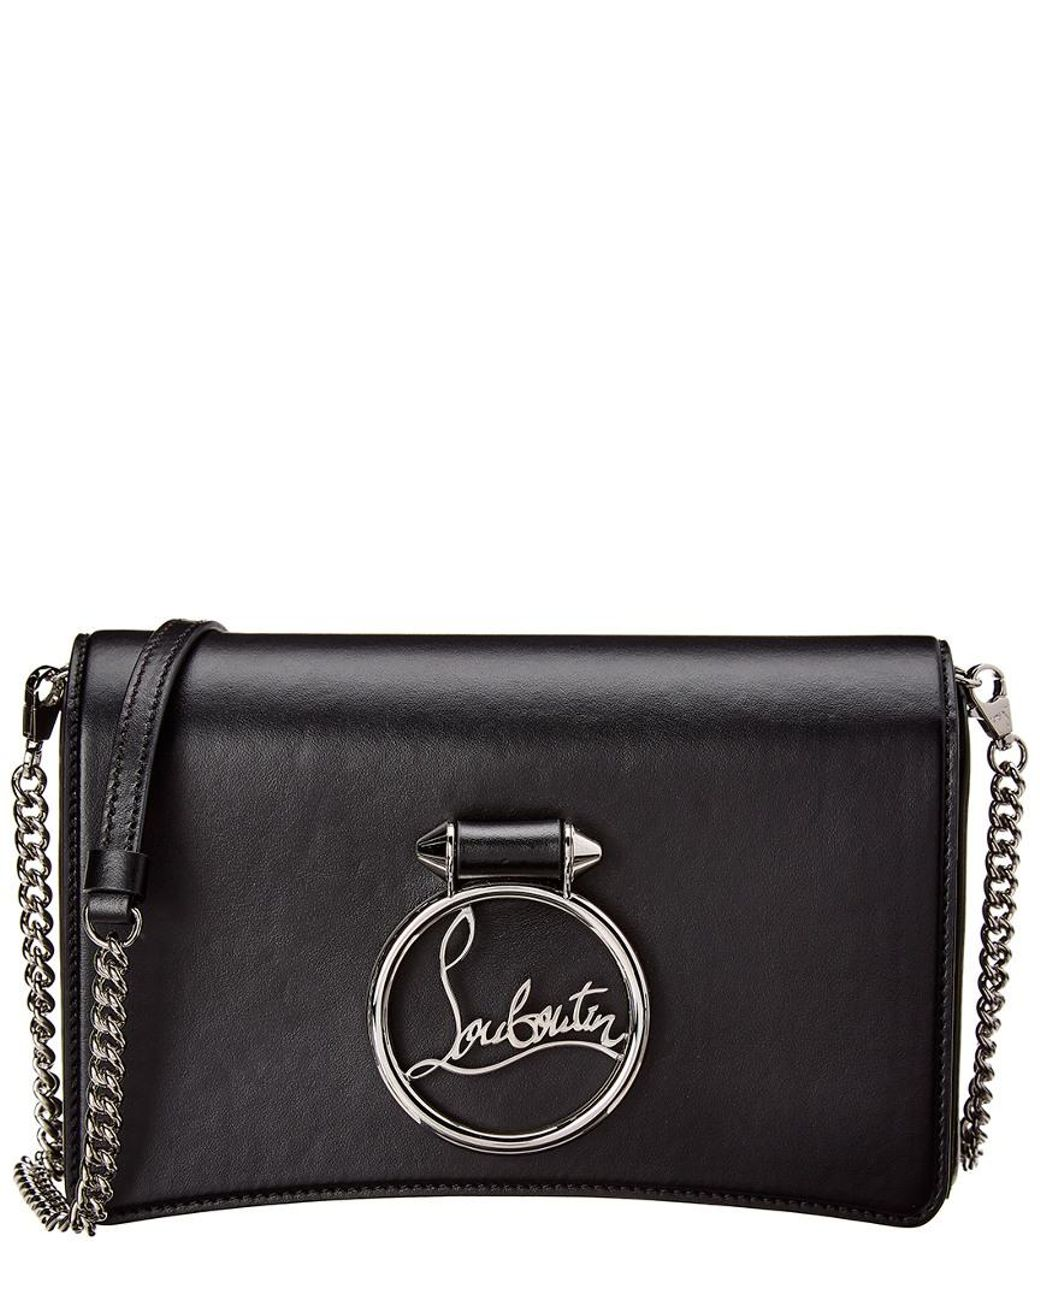 a2b79c24bf4 Lyst - Christian Louboutin Mini Rubylou Leather Shoulder Bag in ...